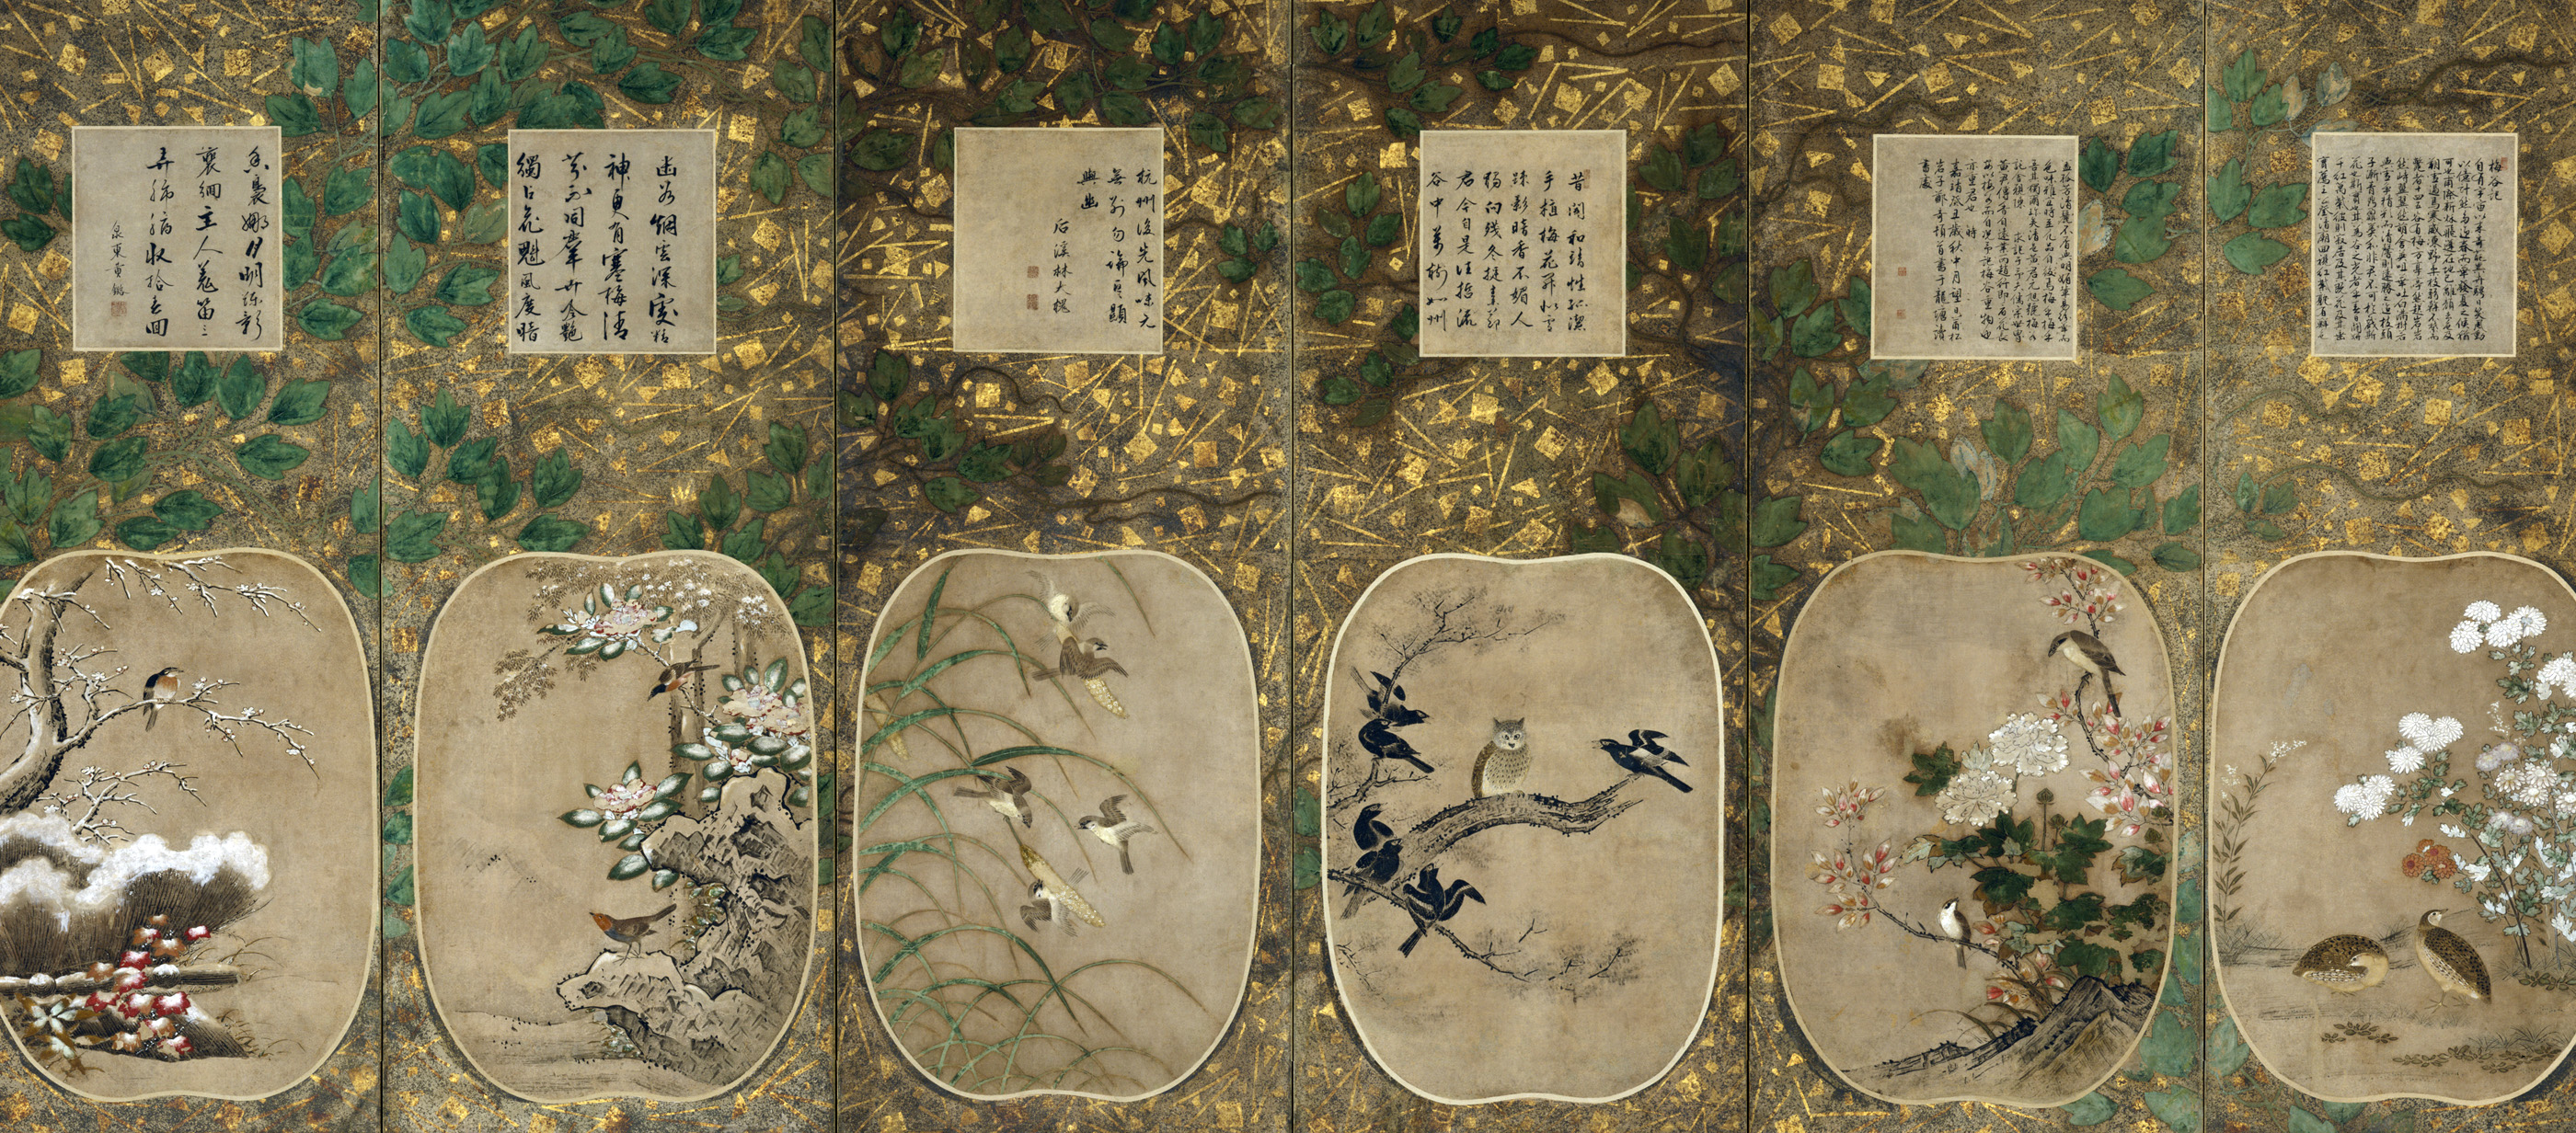 Six-panel folding screen with birds and flowers, accompanied by Chinese calligraphy, representing the months of the year,